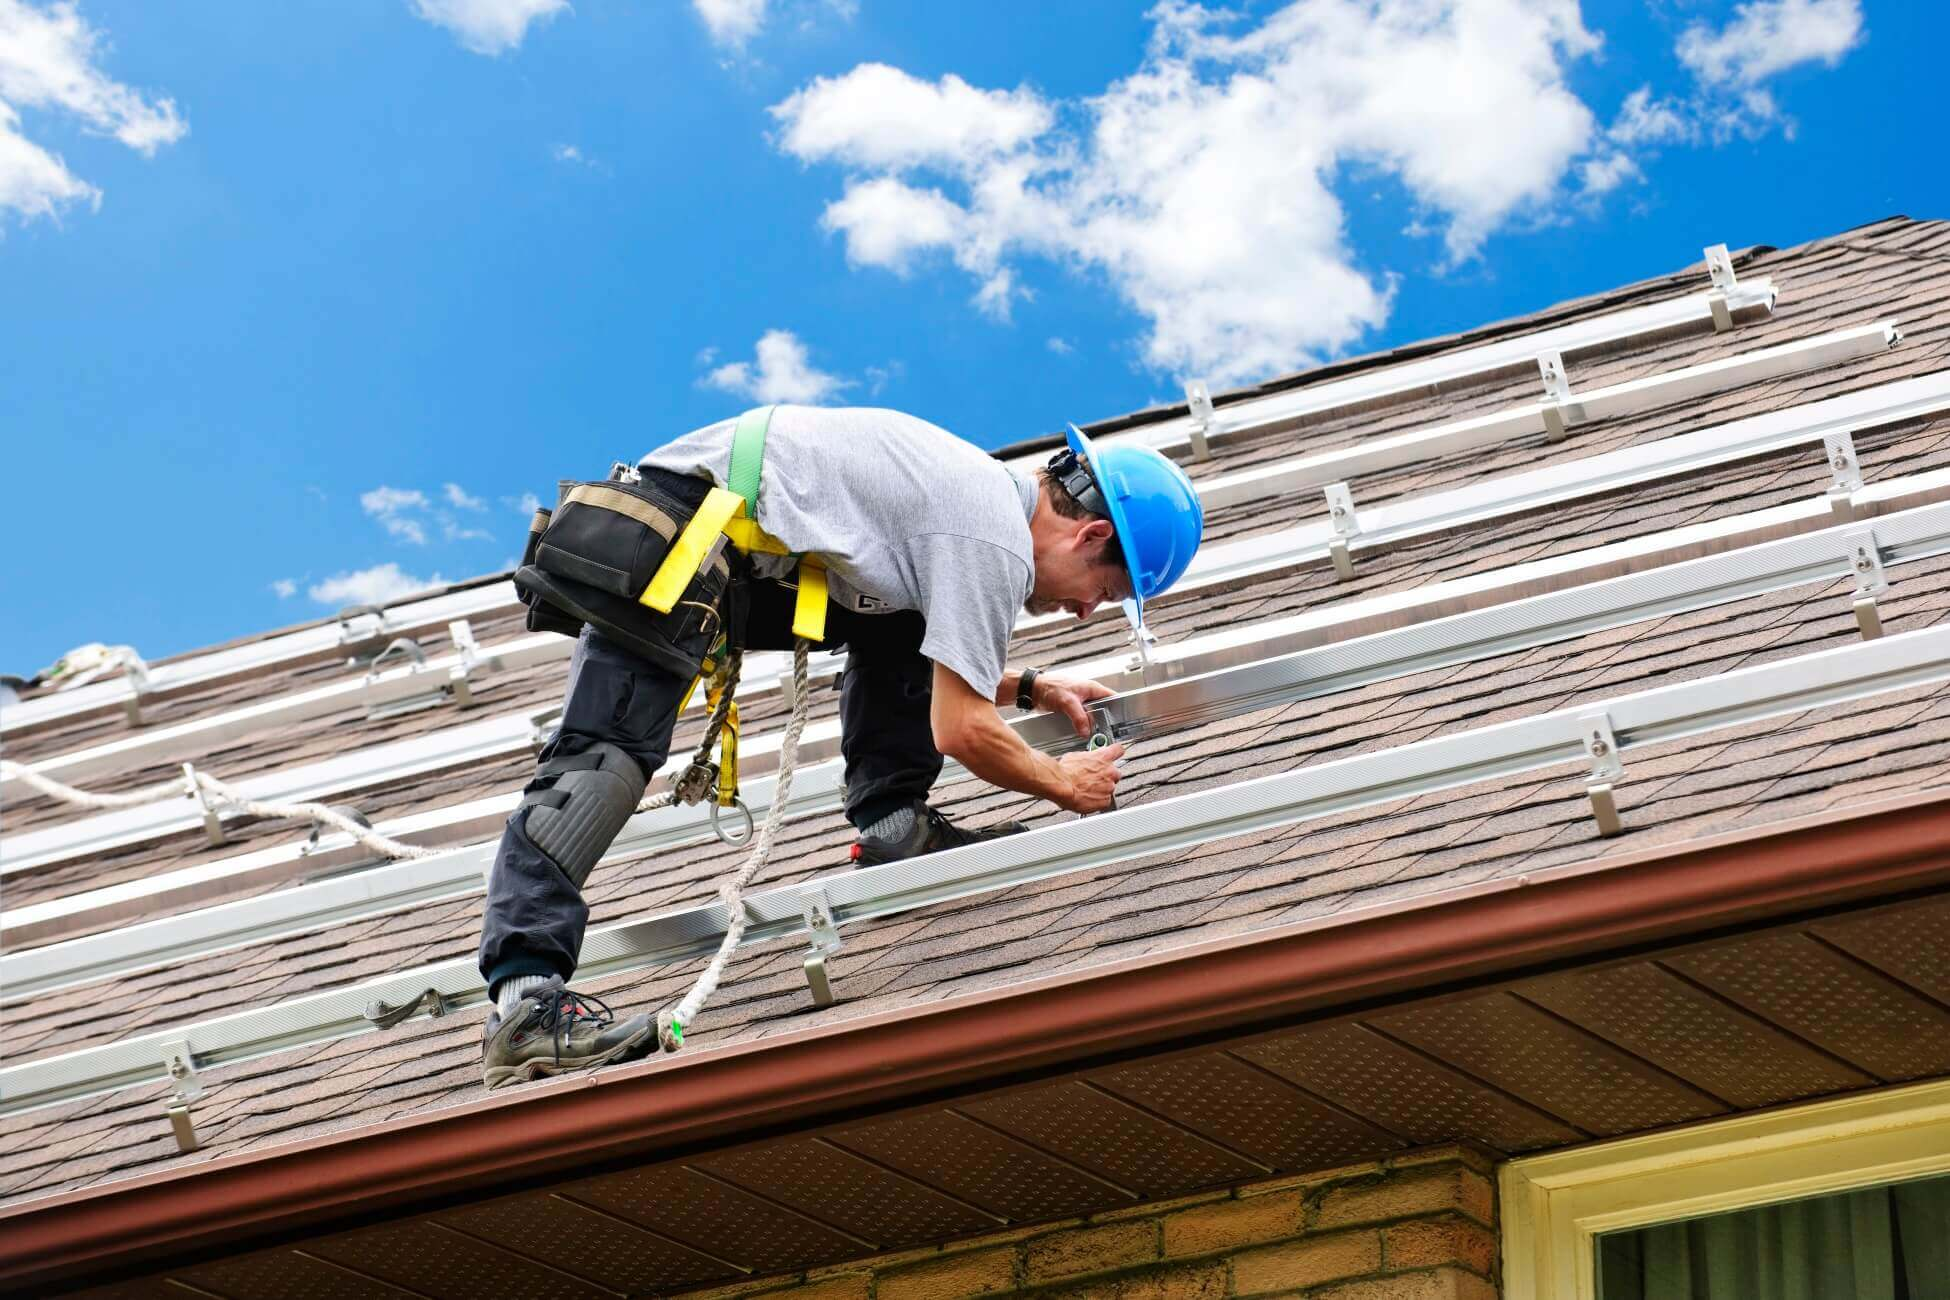 Roofing Company - Ocala Roofing Inc. - 34479